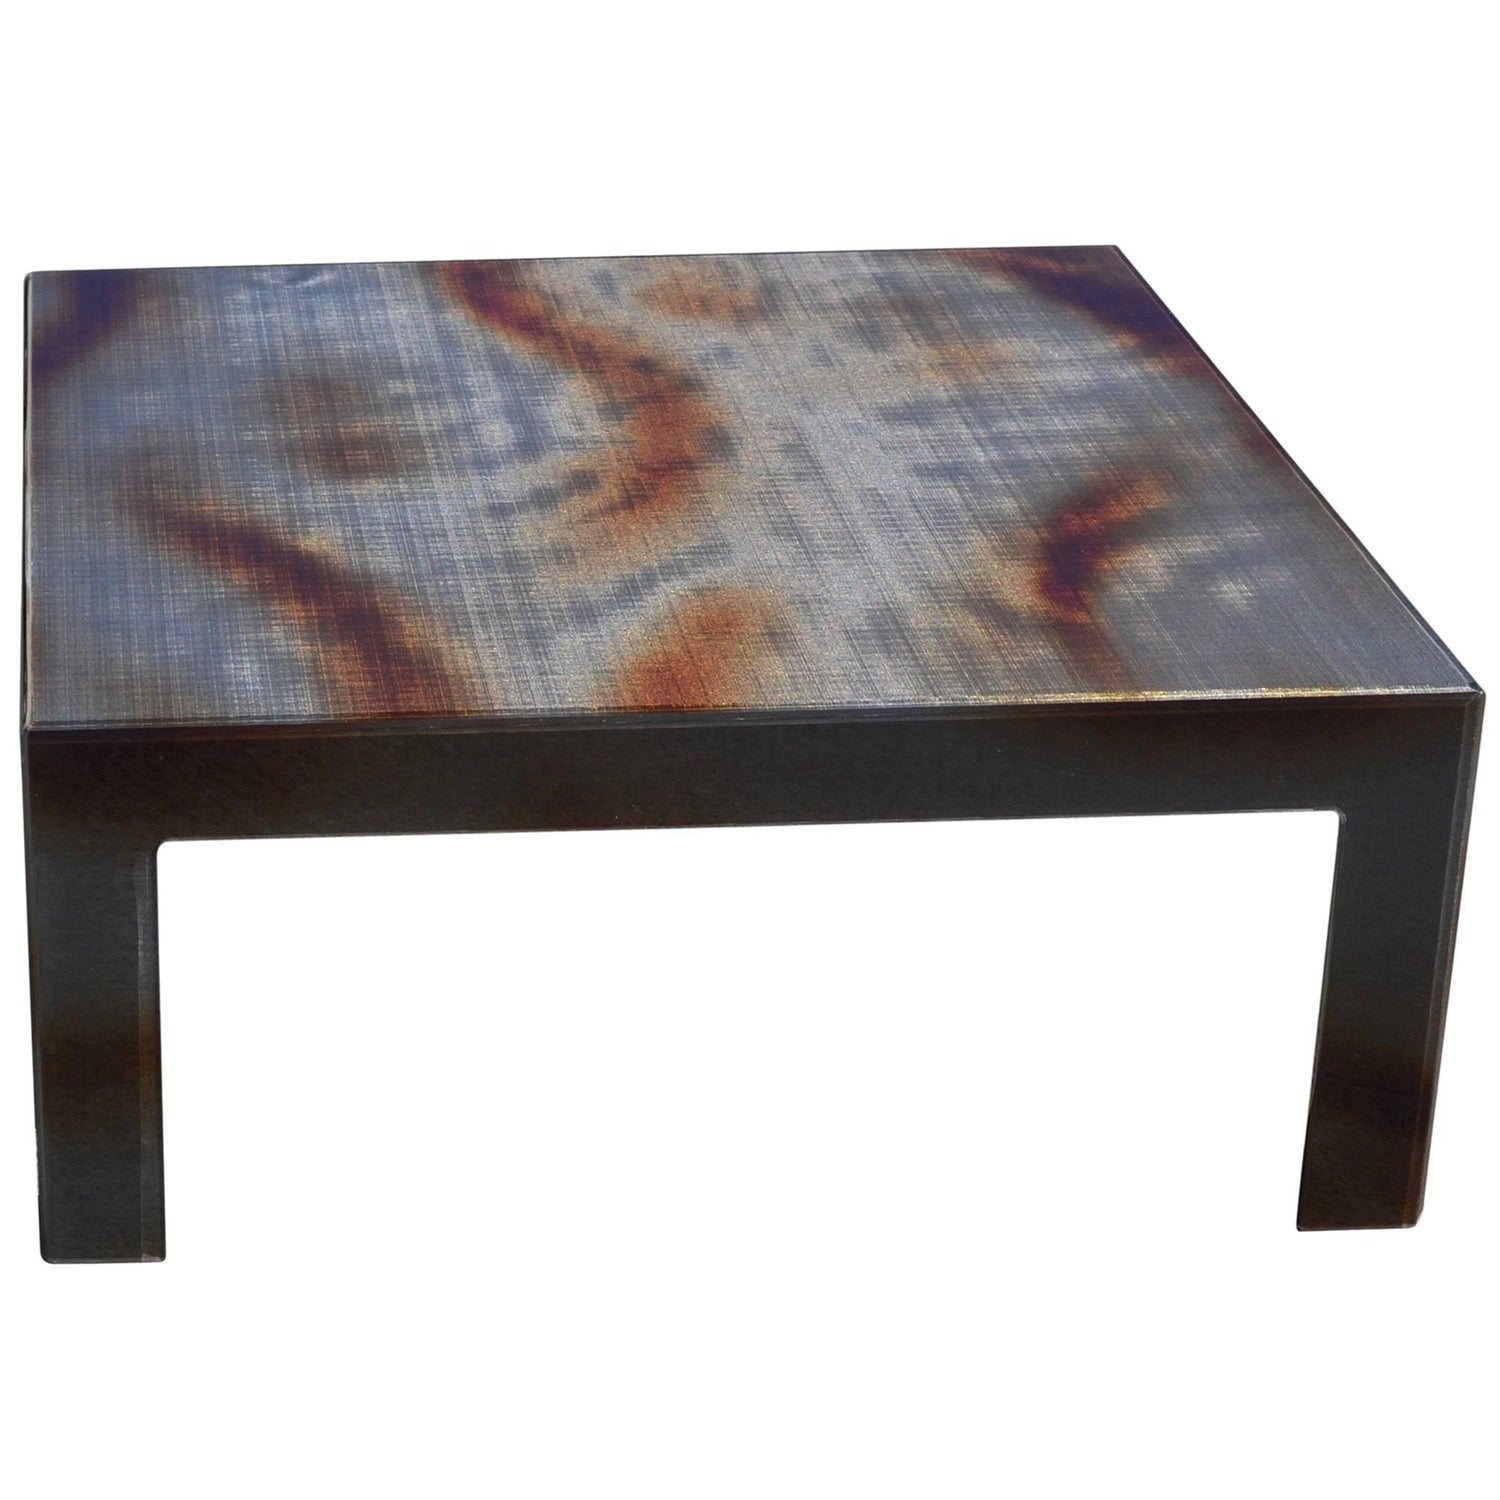 Plexiglass Tables 123 For Sale At 1stdibs # Etagere Vintage Plexiglas